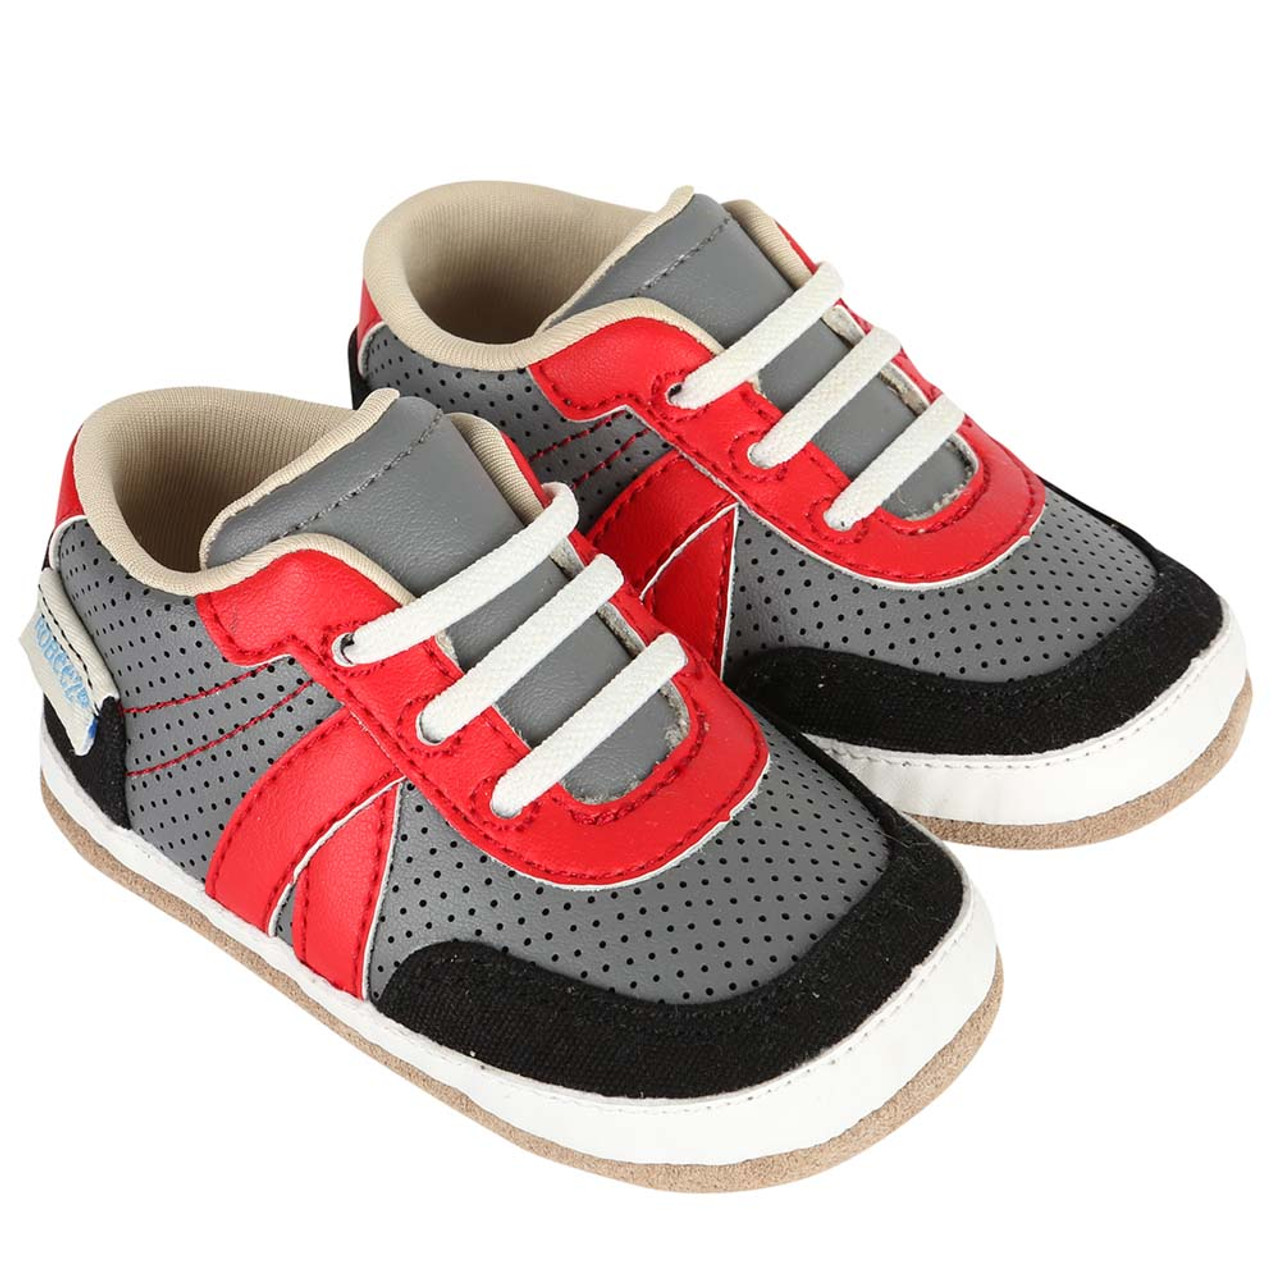 What Size Toddler Shoe Is  To  Mos